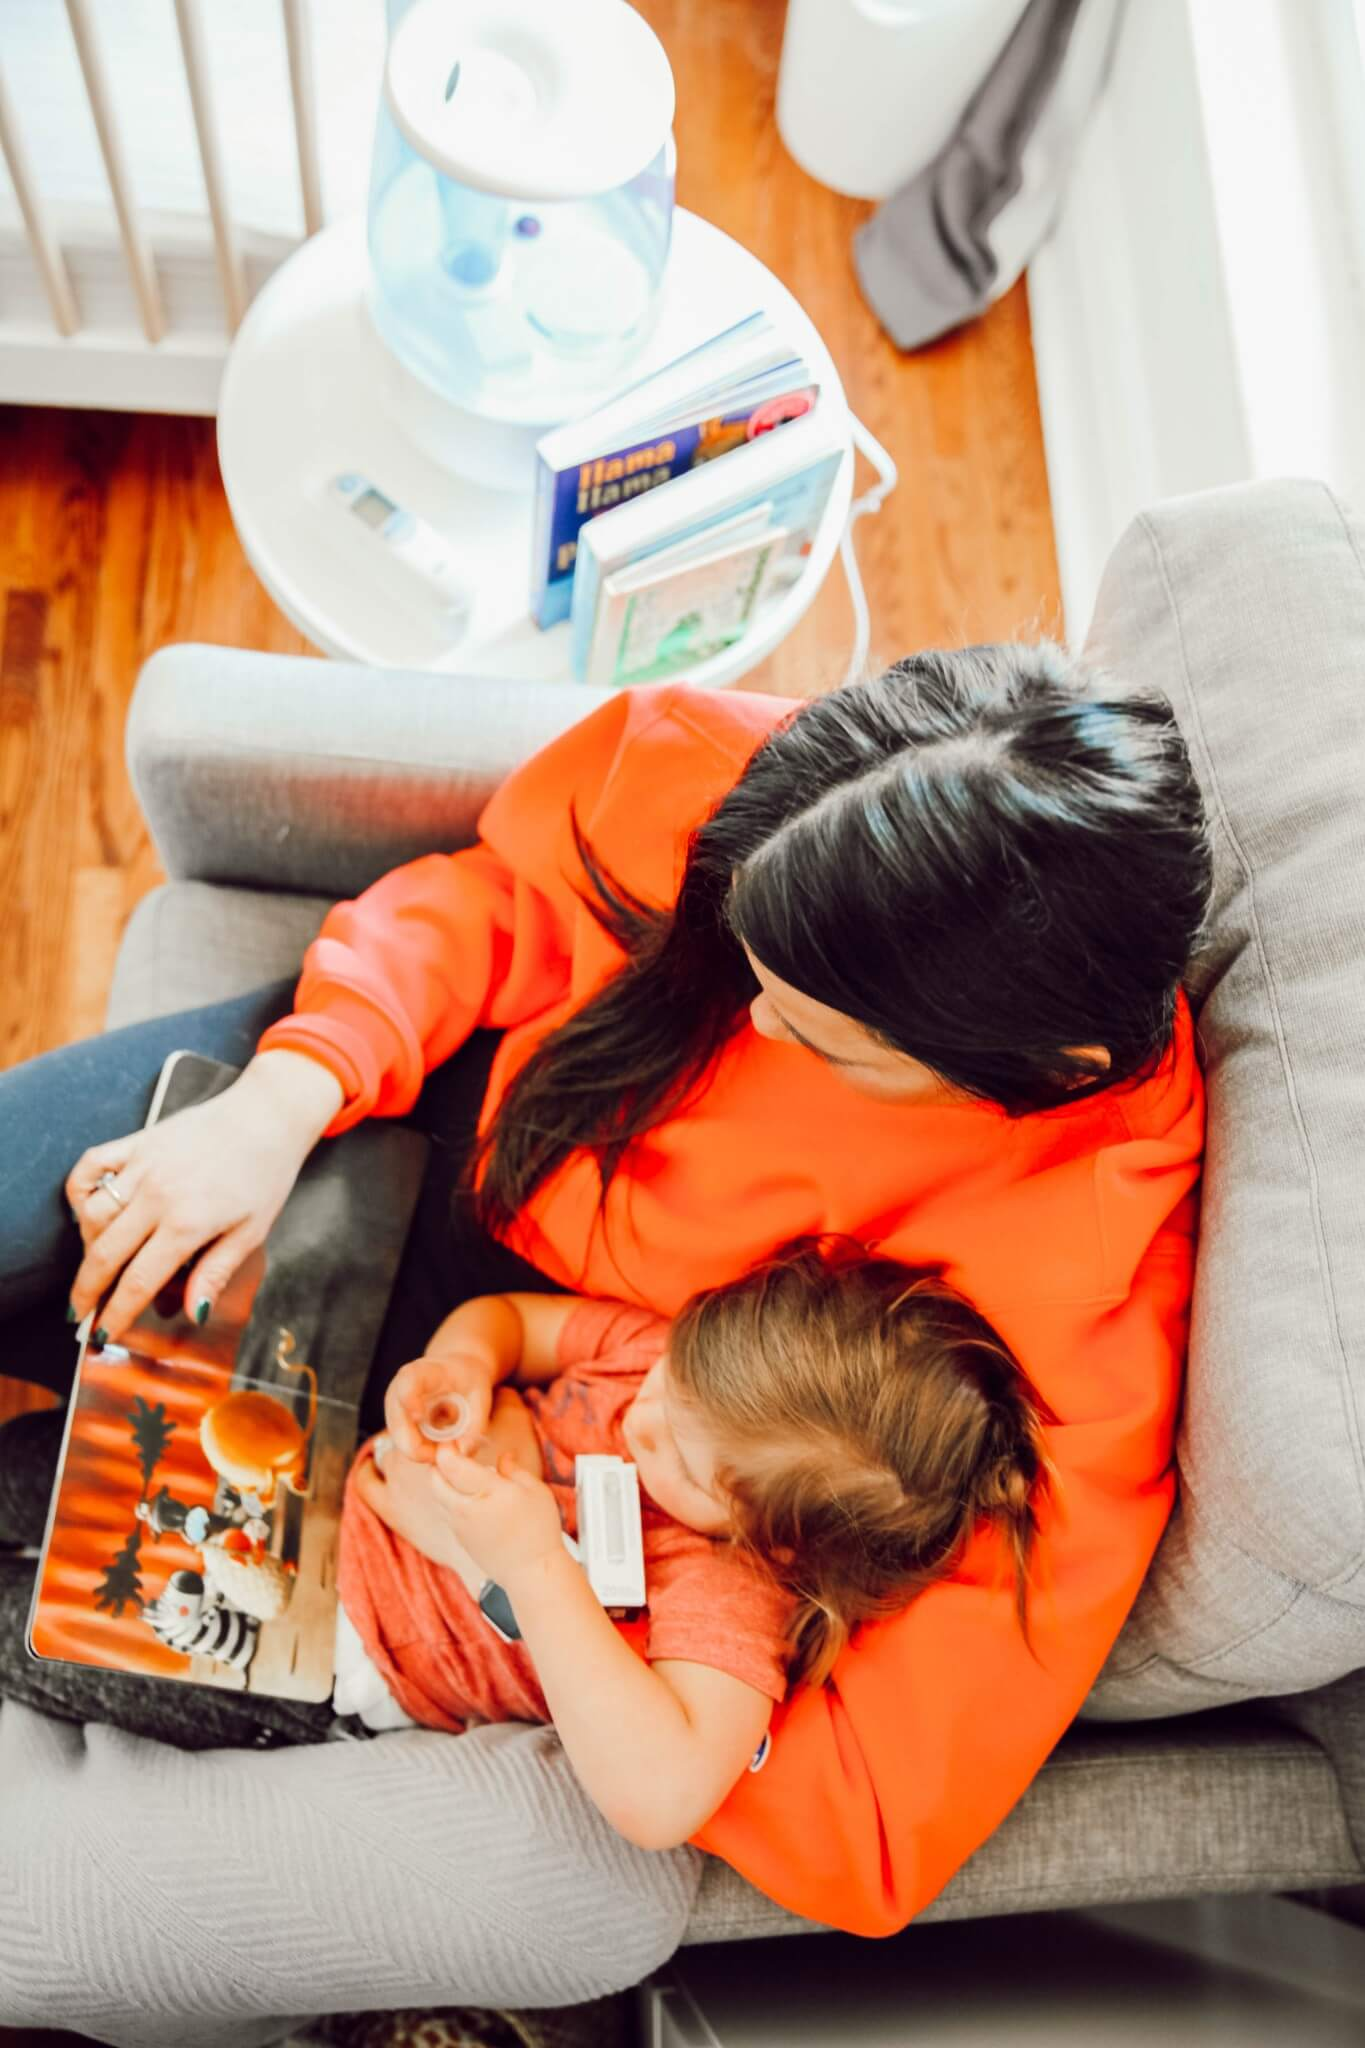 My Top 5 Favourite Surprising Gifts For New Parents